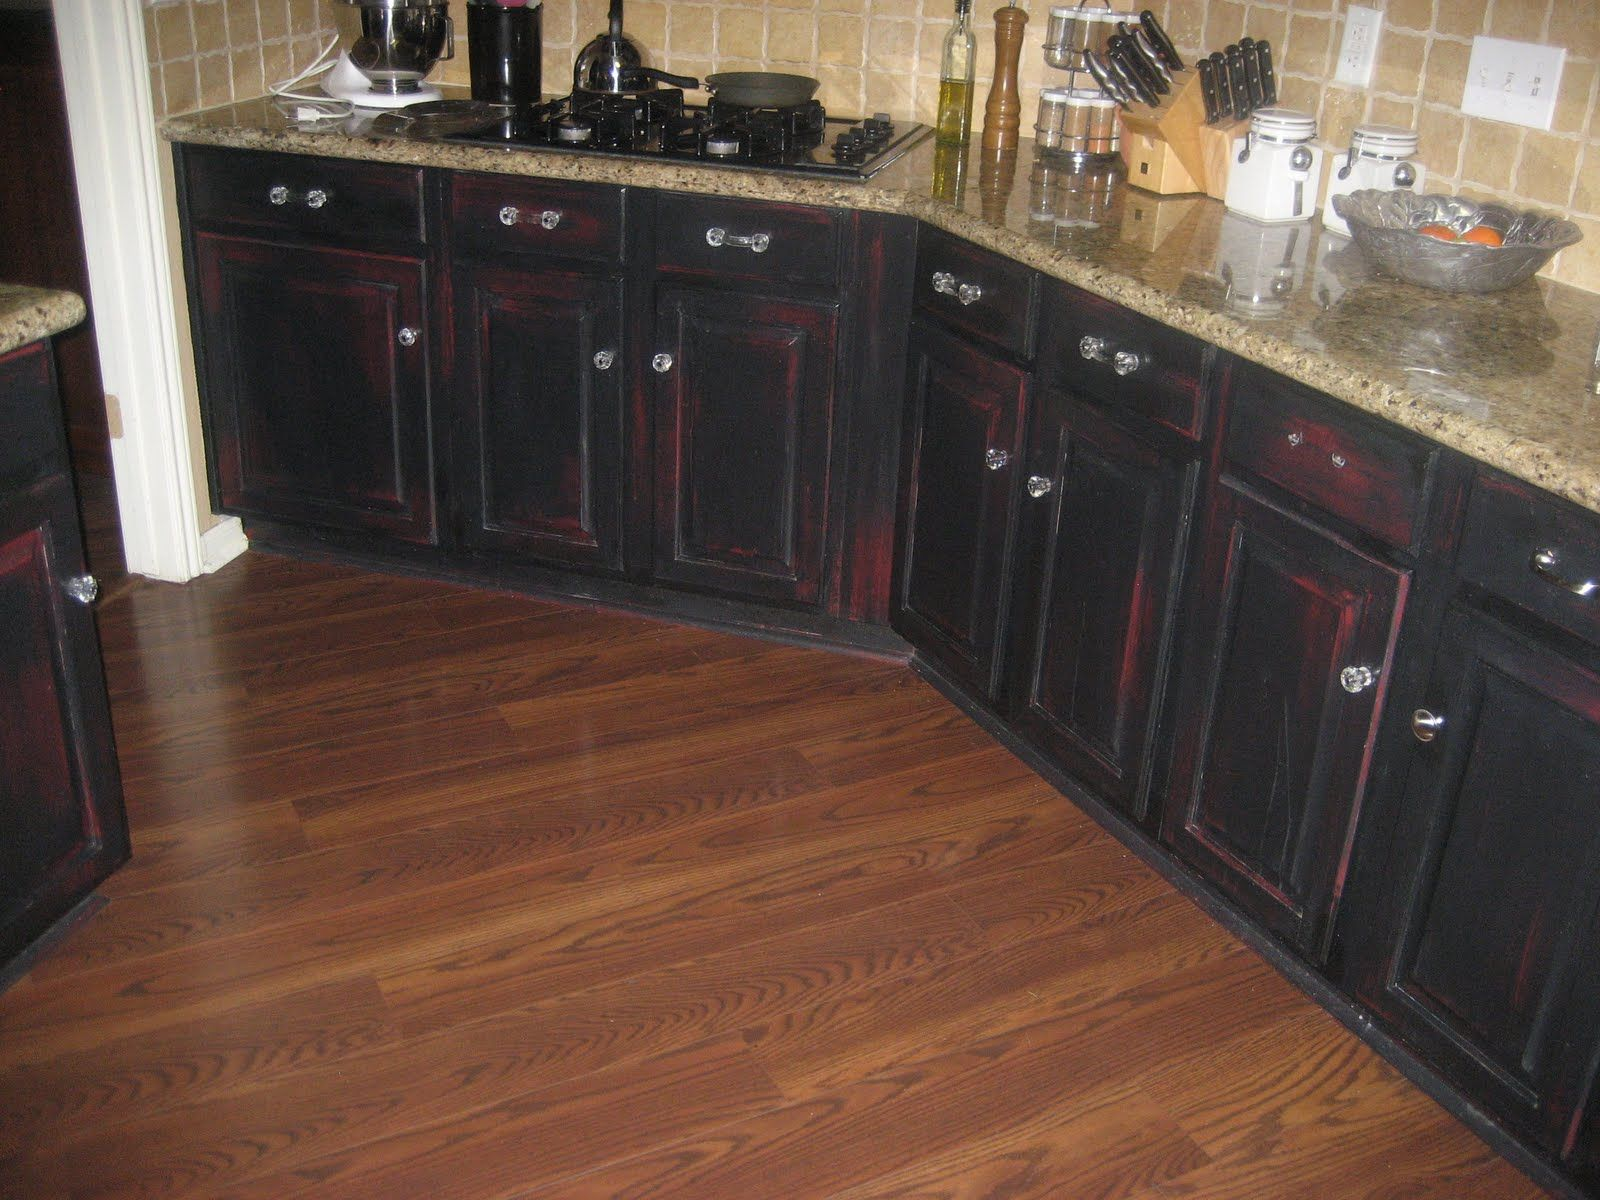 Distressed Black Kitchen Cabinets Inspiration | Kitchen cabinet inspiration, Black kitchen ...